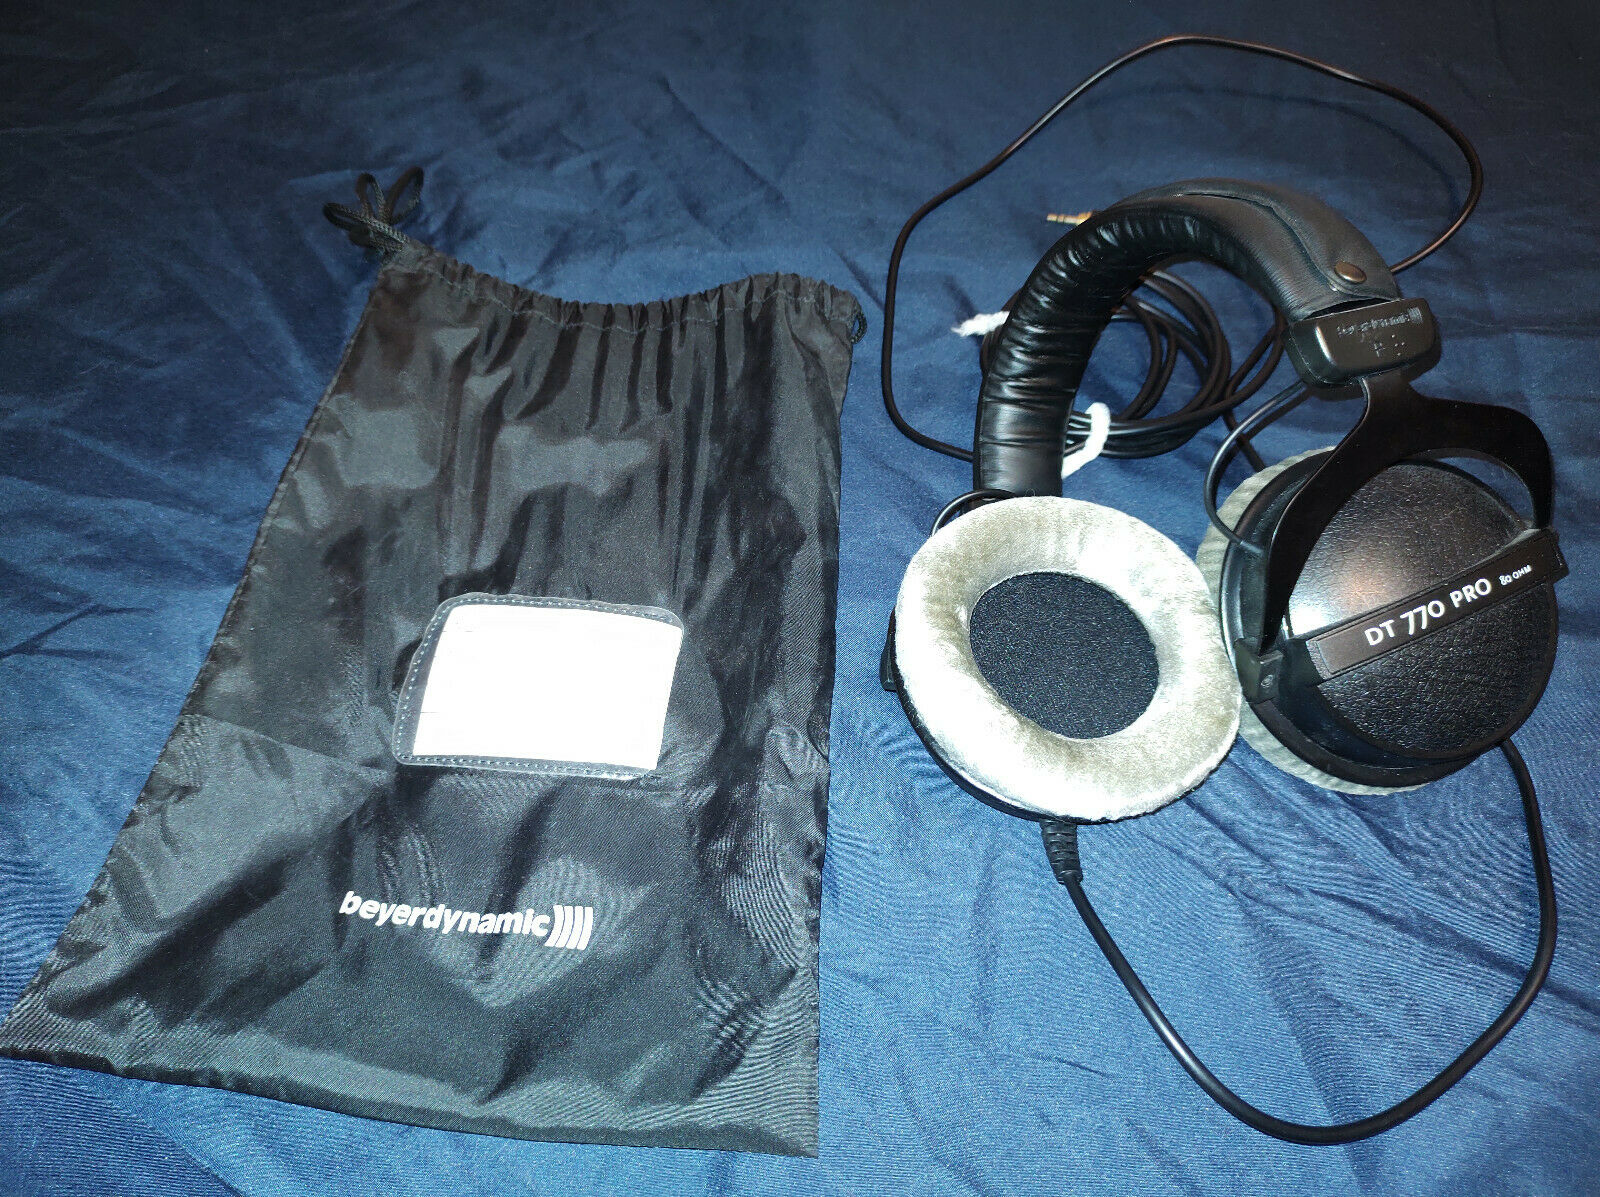 Beyerdynamic DT 770 Pro 80 Ohms Closed Studio Headphones Gently Used FREE SHIP - $100.00